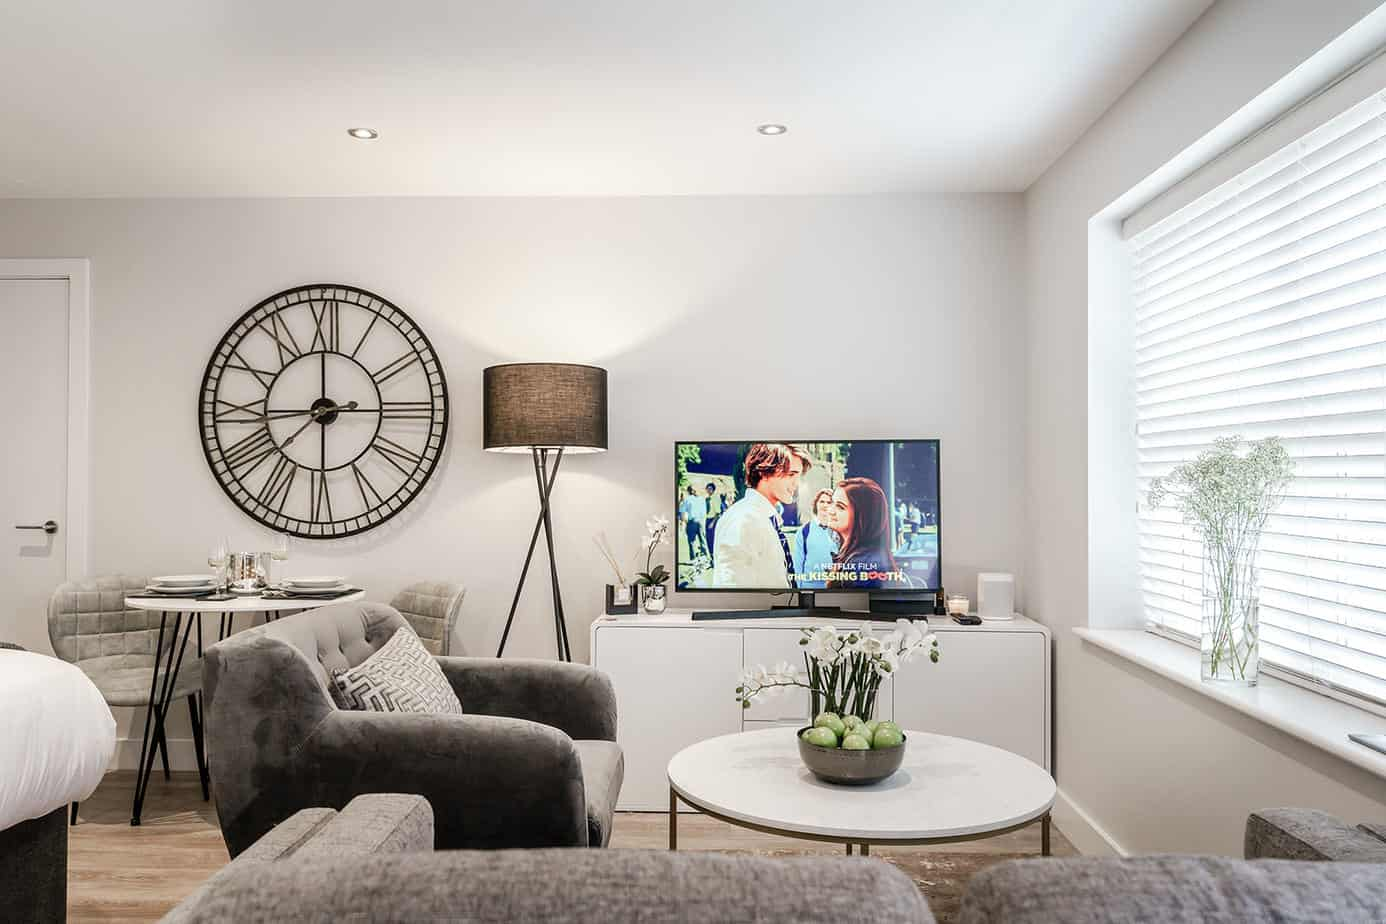 Tailored Stays Victoria Road modern serviced apartment studios with high-end attention to detail. Located 5 minutes from Cambridge town centre